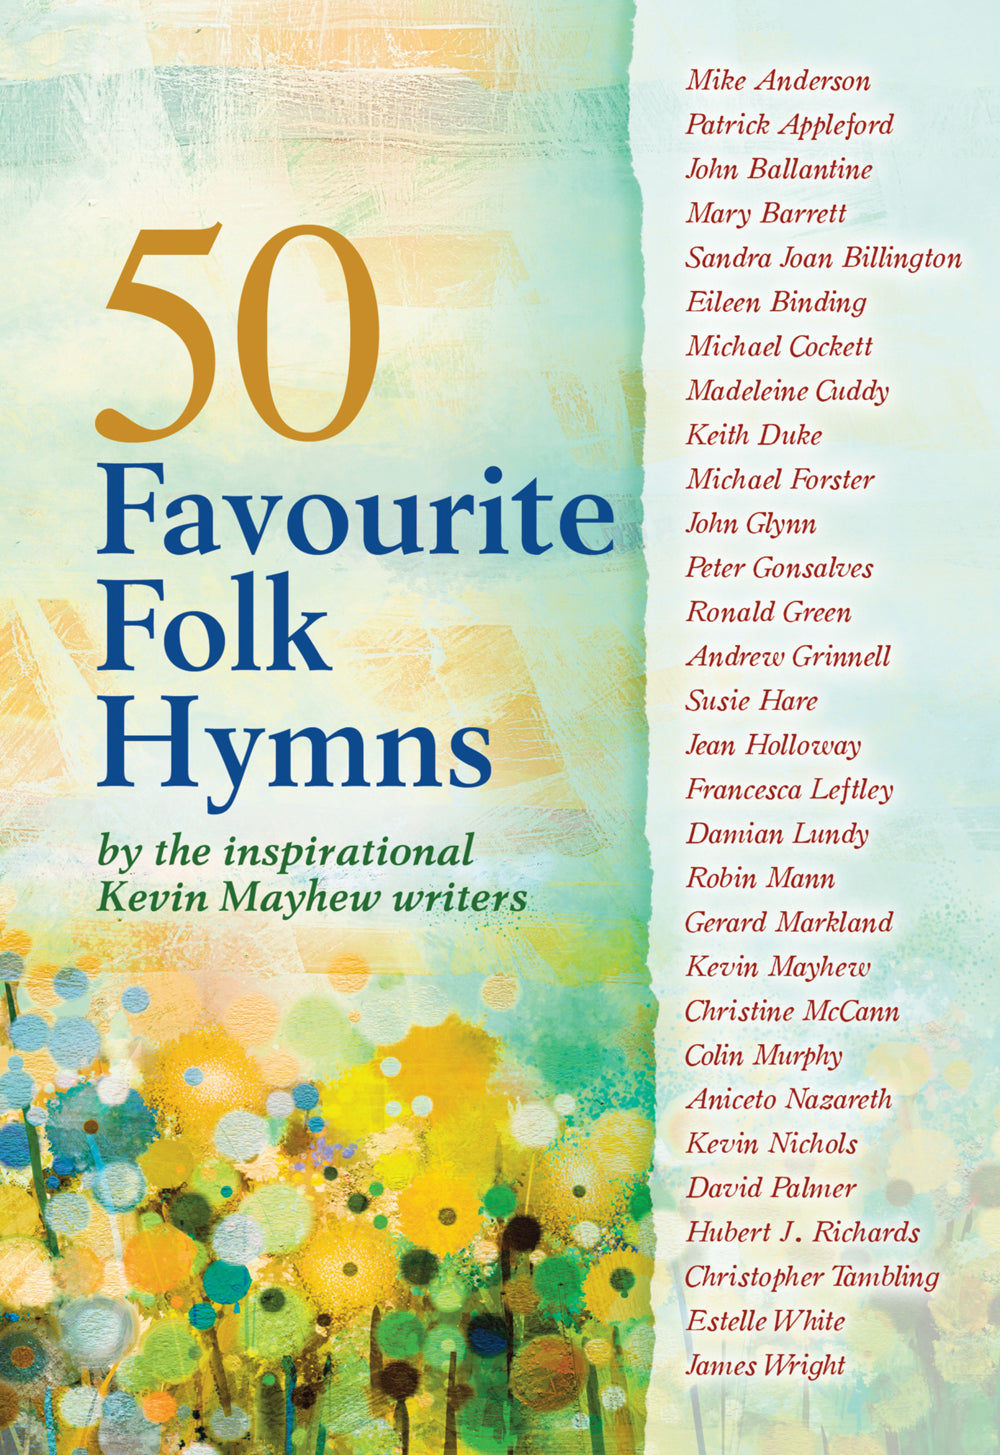 50 Favourite Folk Hymns50 Favourite Folk Hymns